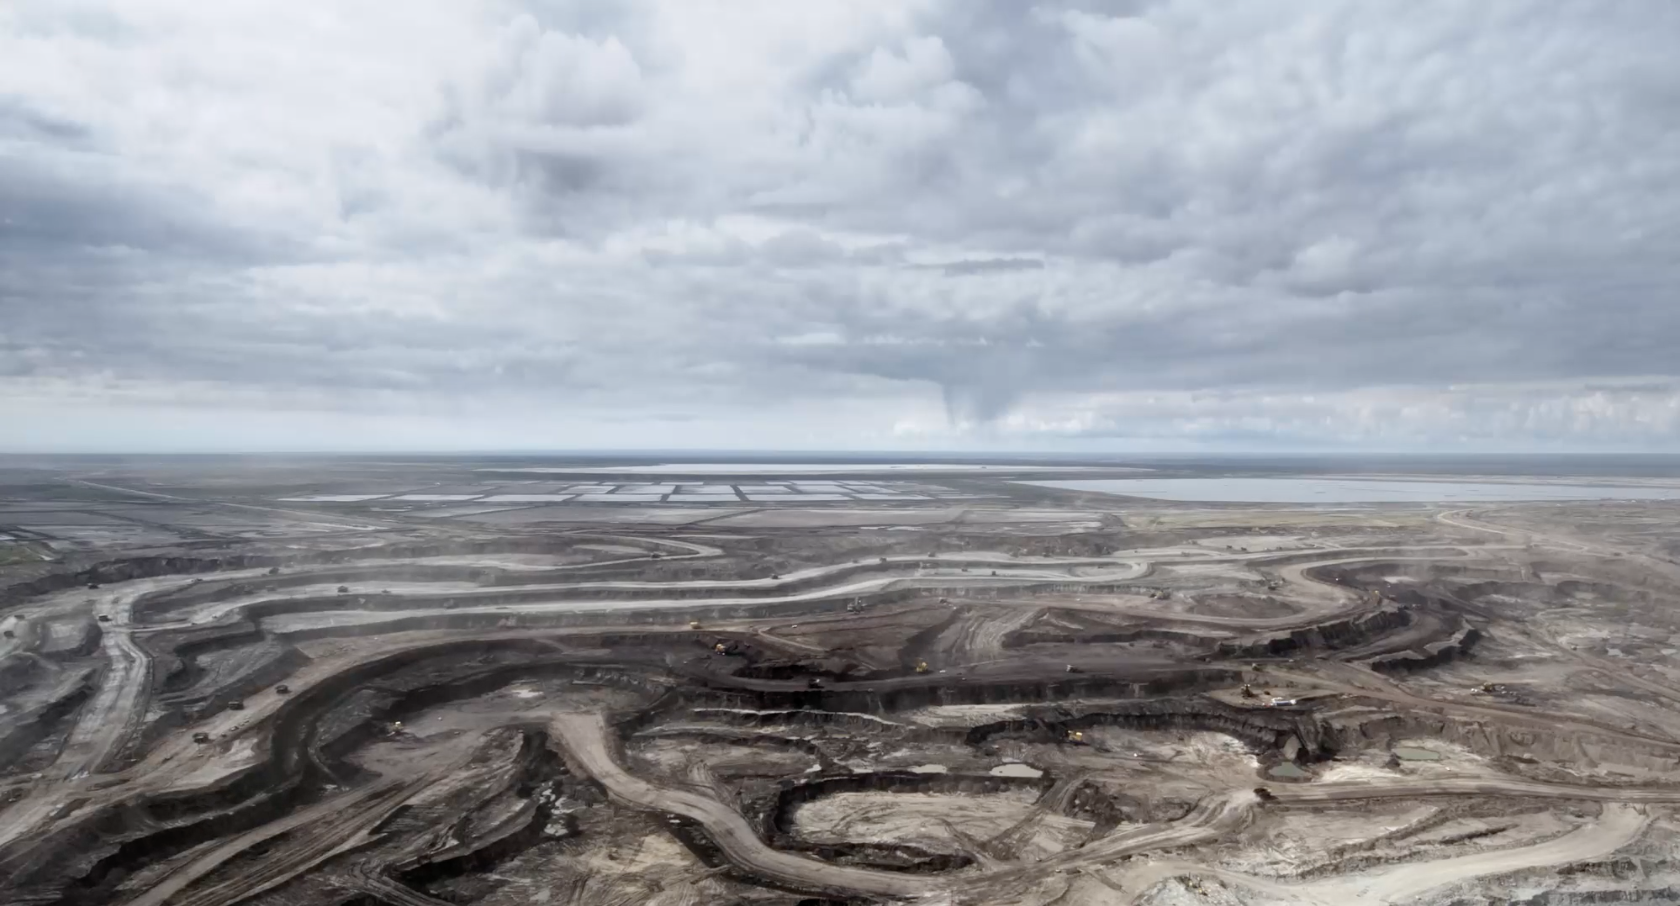 Oil sands, near Fort McKay, Canada from the documentary film Earth